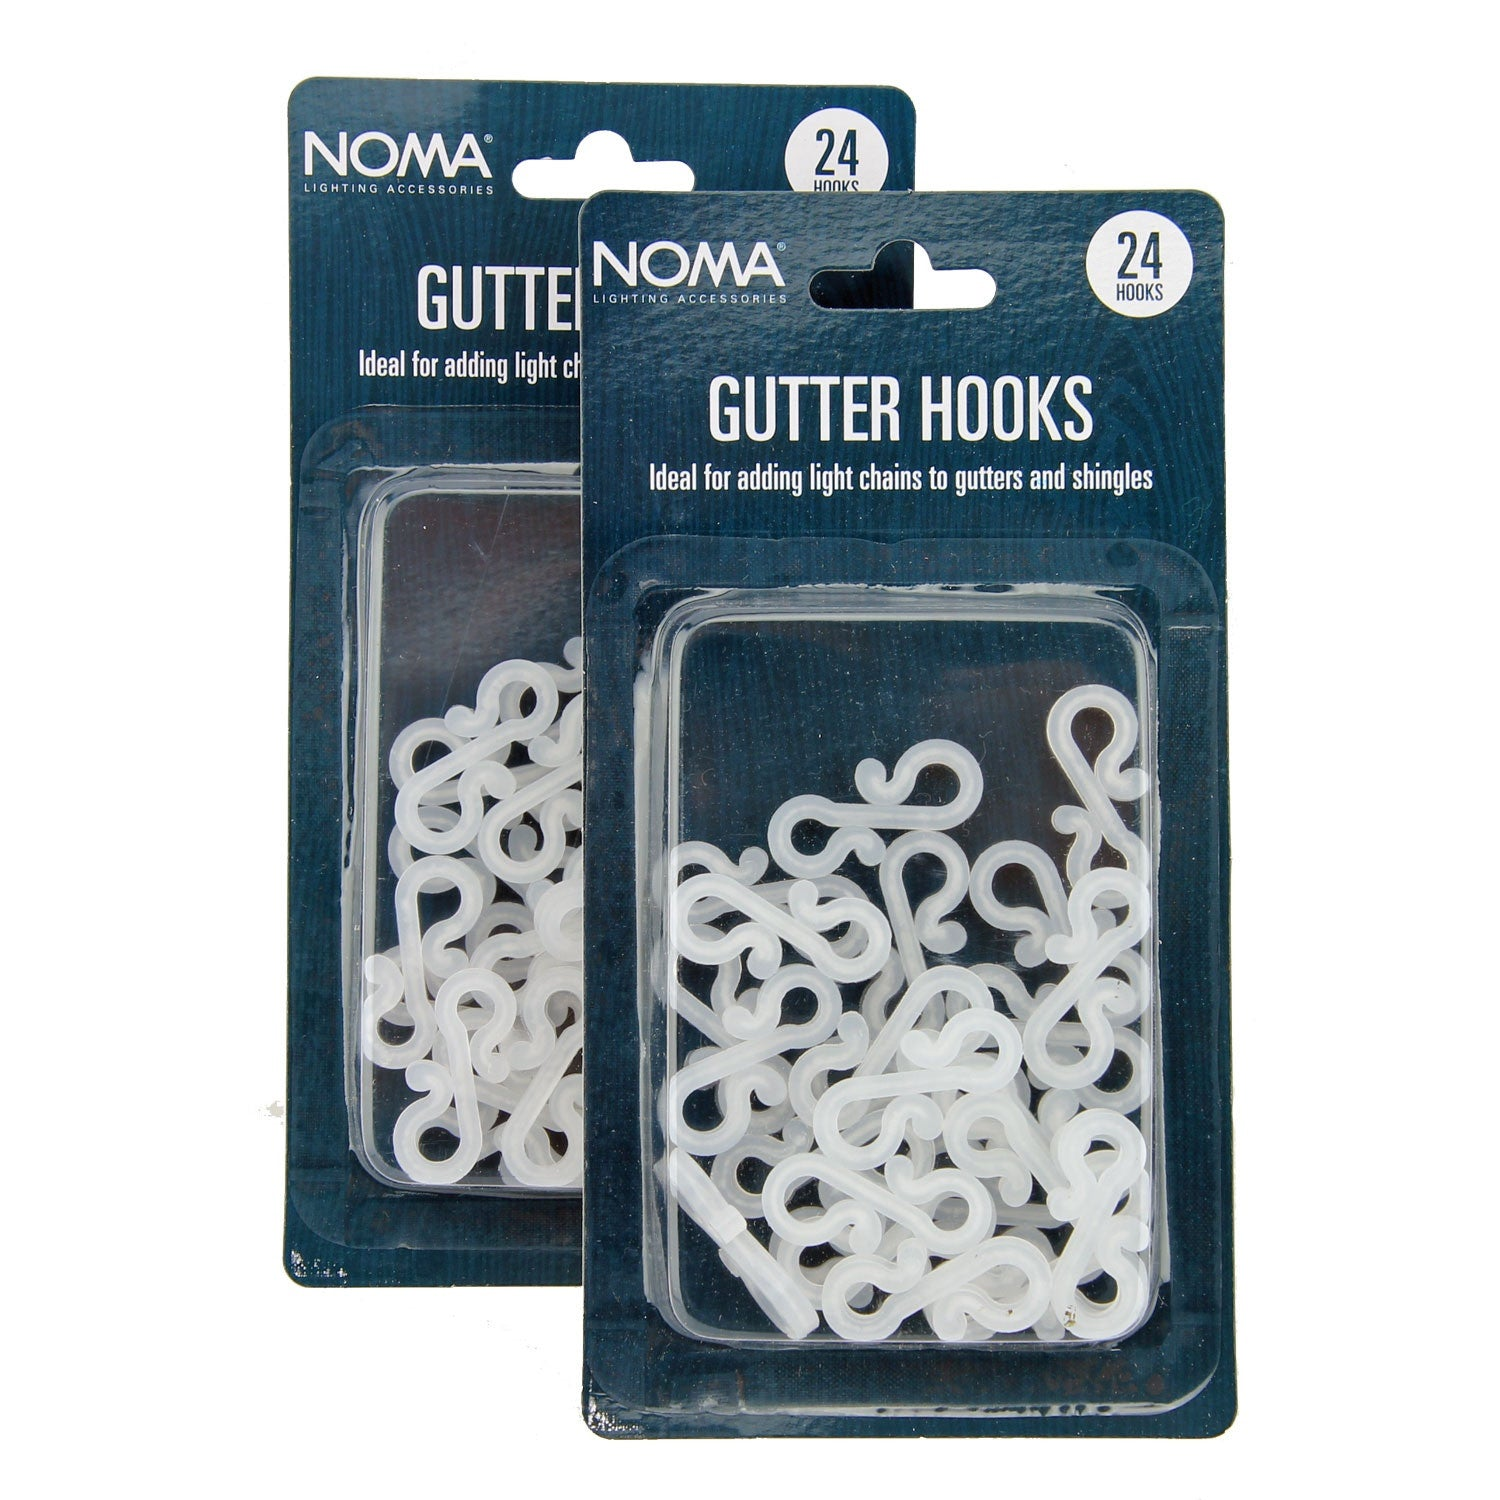 gutter hooks for hanging christmas lights